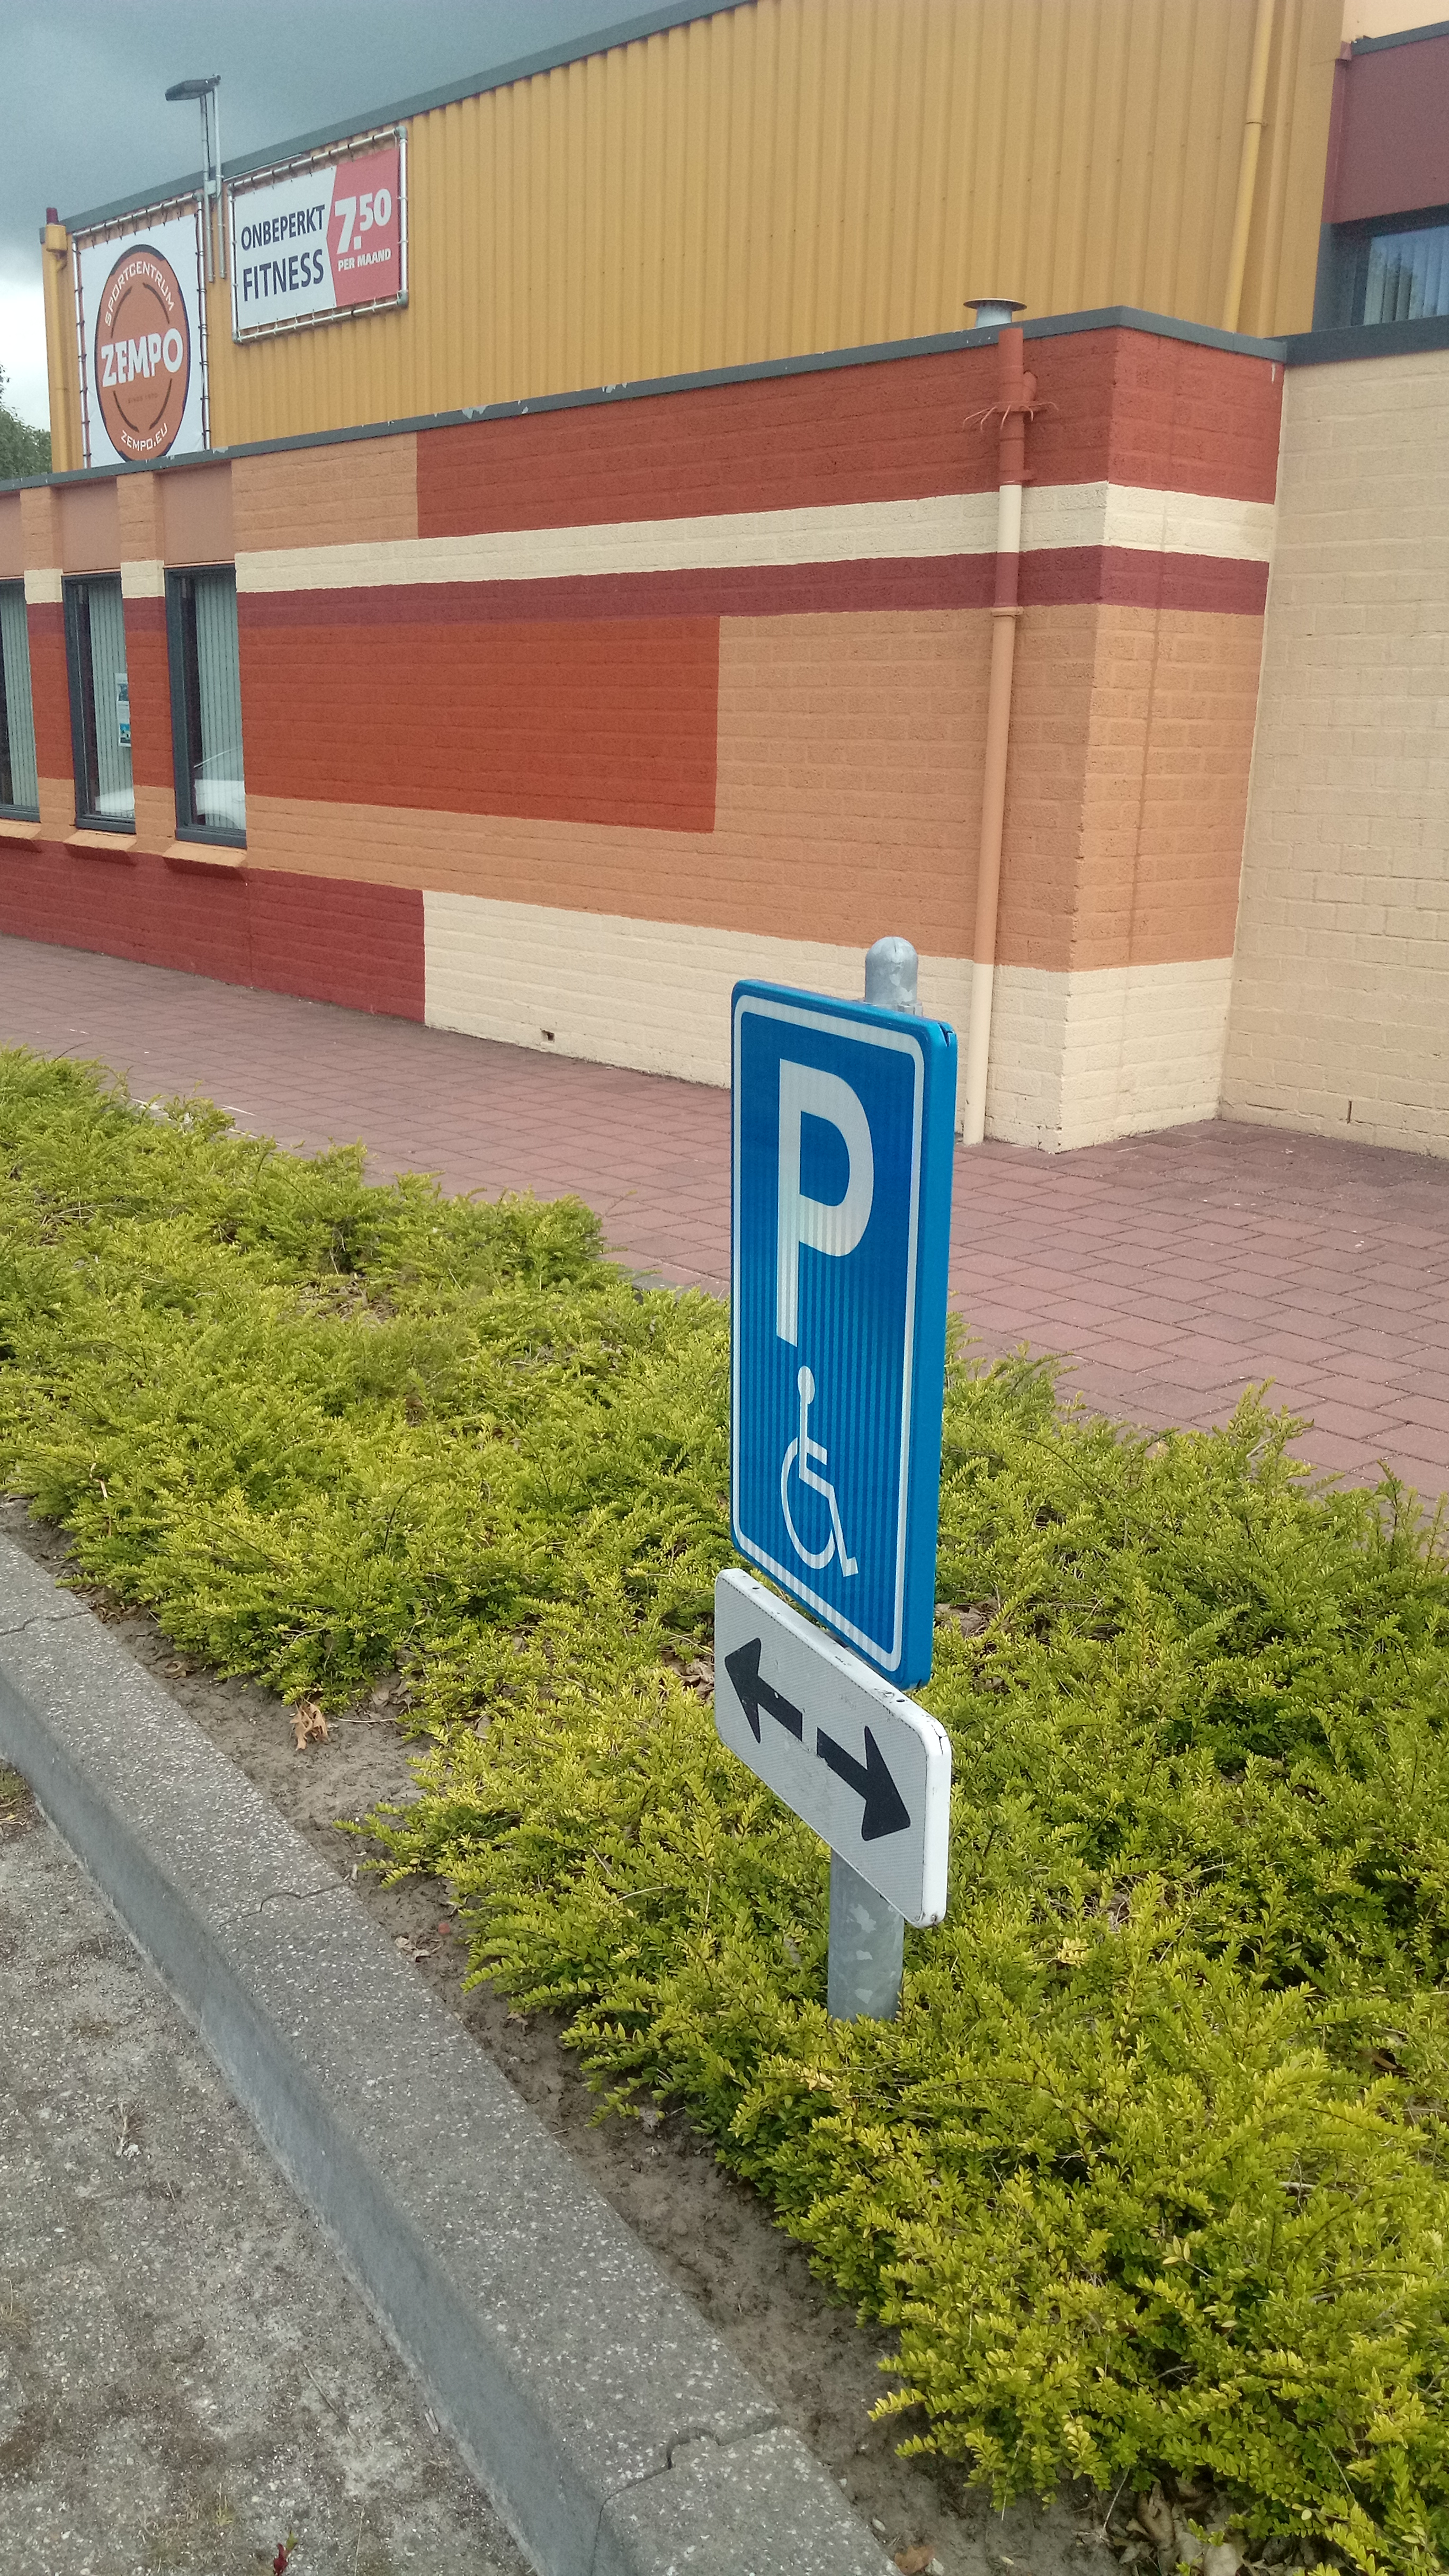 File:Disabled parking sign with arrows pointing to the left